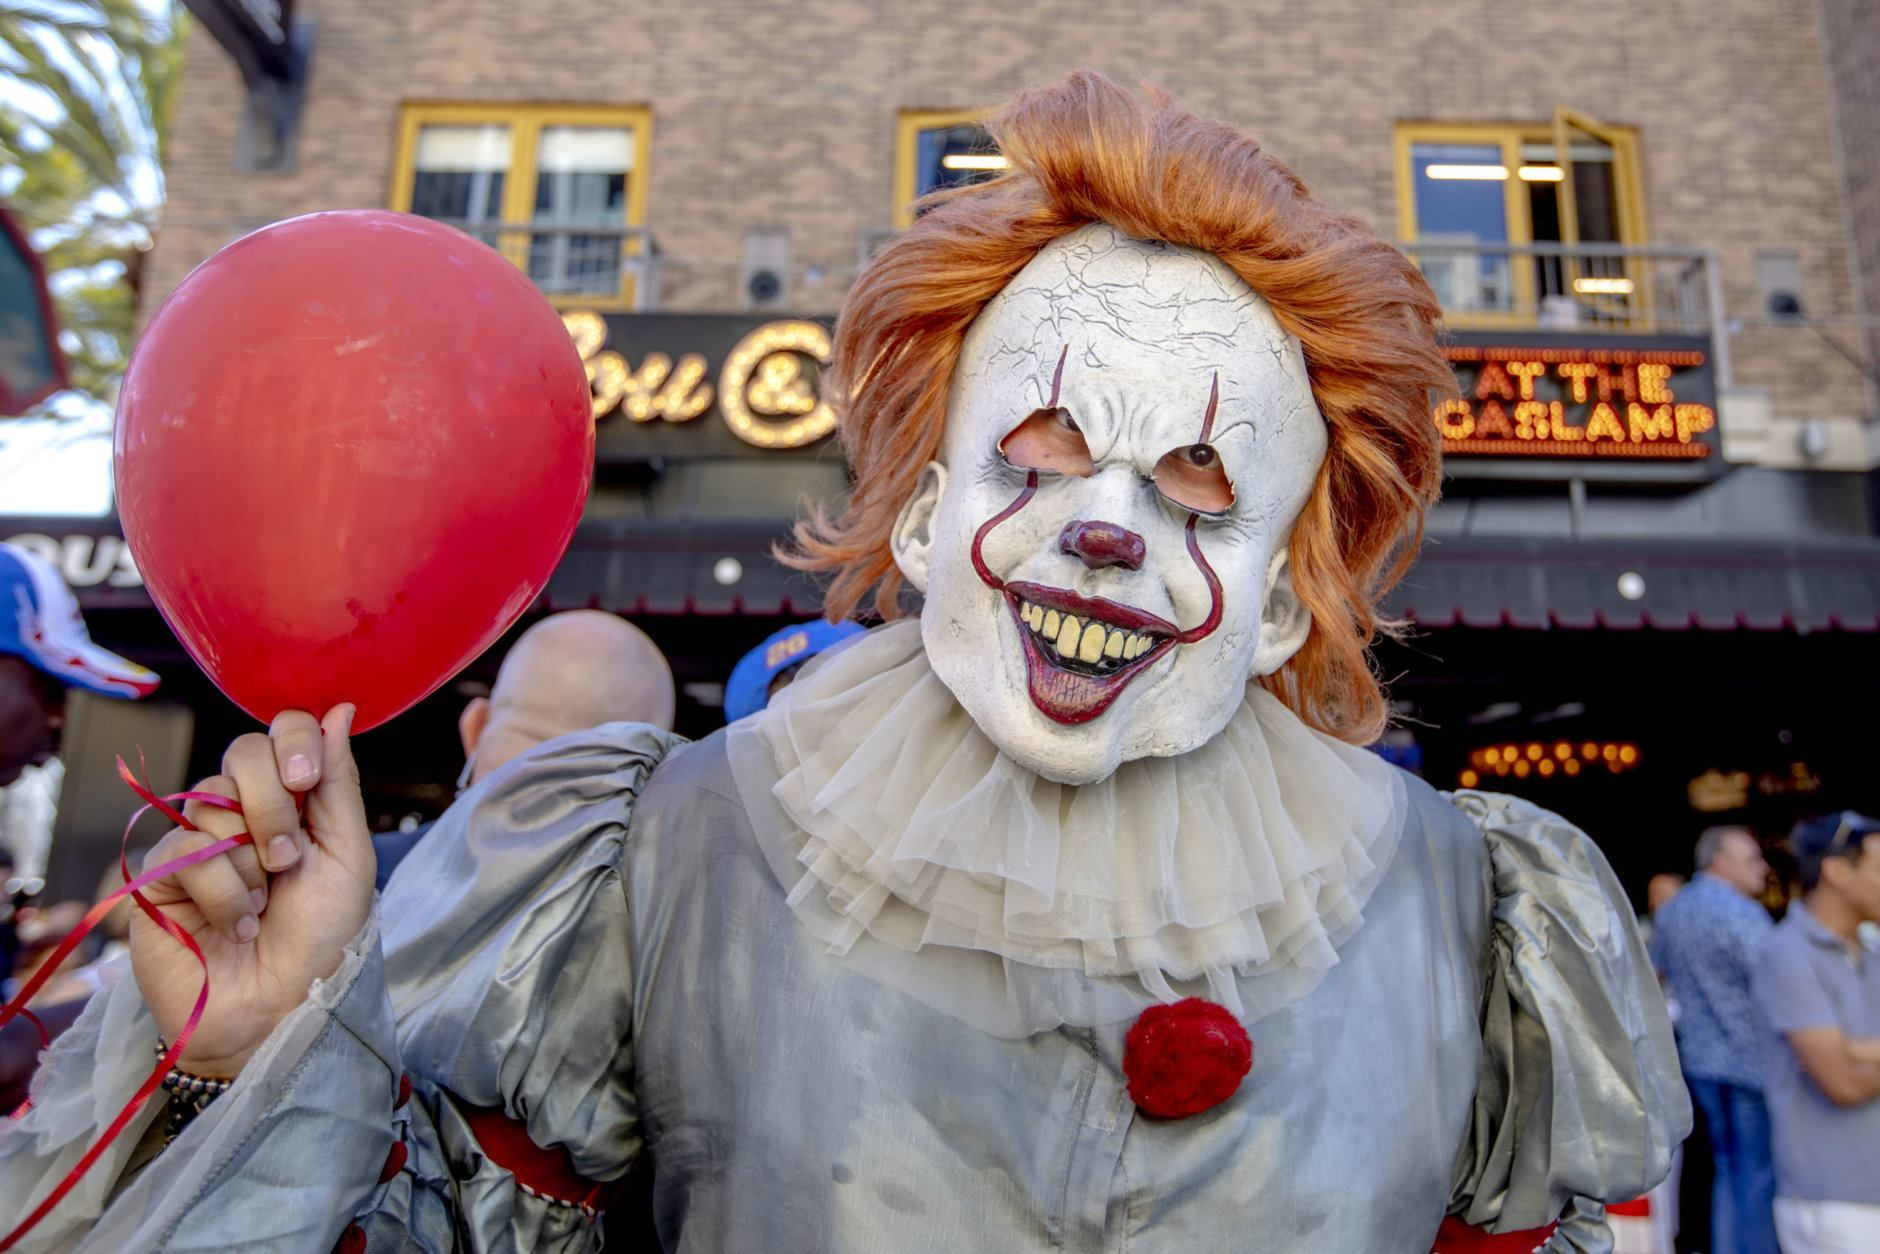 <p>So that&#8217;s Big Data&#8217;s take. What does local retail say?</p> <p>Pennywise is indeed big, as are characters from &#8220;Game of Thrones,&#8221; &#8220;Ghostbusters&#8221; and &#8220;Frozen,&#8221; according to a source working at the Halloween City in Bethesda, Maryland. That employee wished to remain anonymous; one assumes he was wearing a mask when he said this.</p> <p>Side note: We are not quite clear whether Halloween City is an incorporated municipality in Bethesda or just a neighborhood. We&#8217;ve yet to confirm.</p>